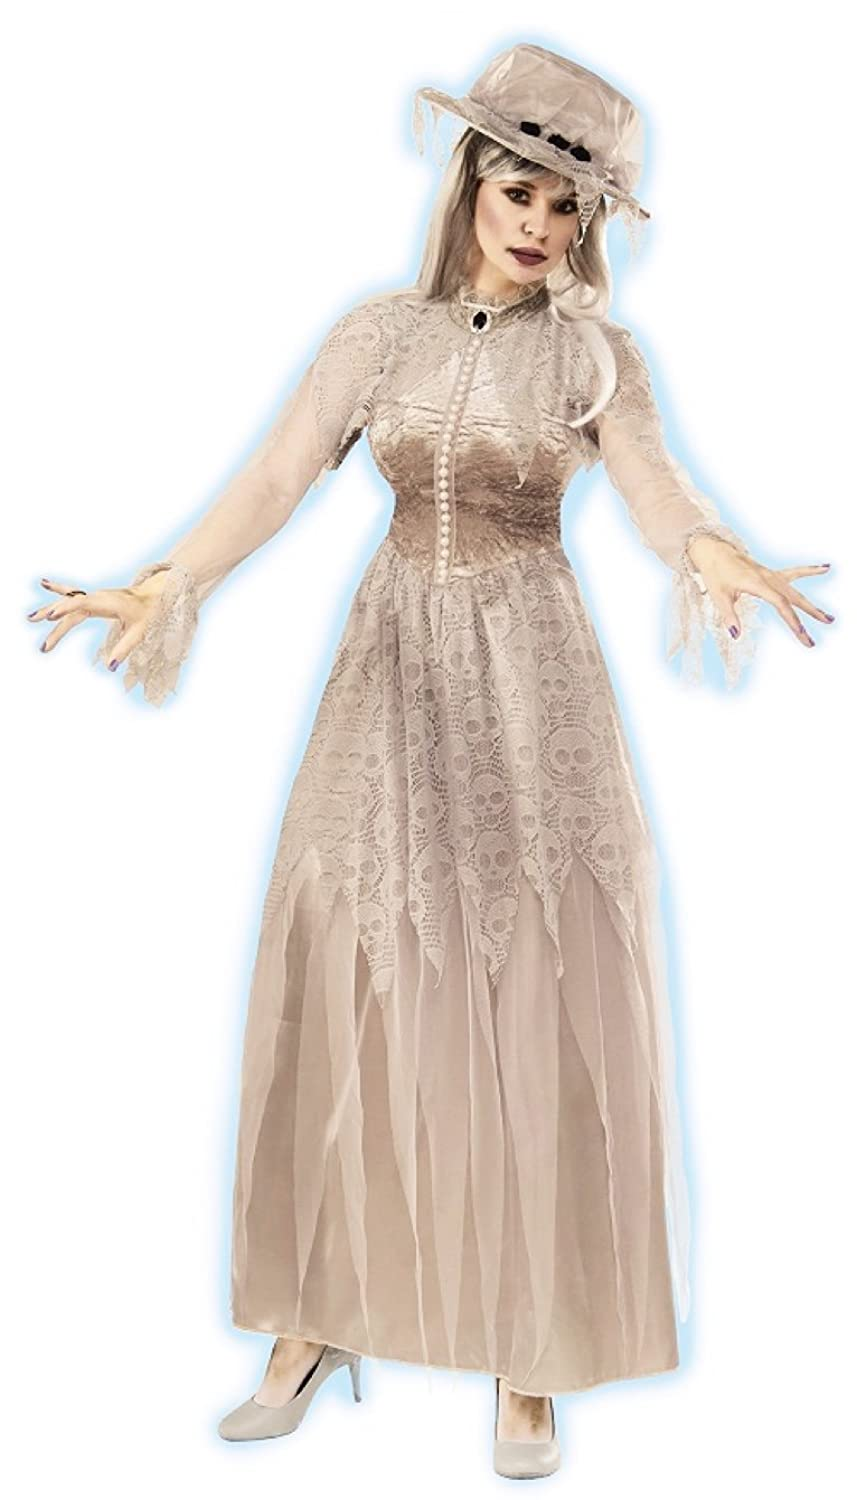 Victorian Dresses | Victorian Ballgowns | Victorian Clothing Victorian Ghost Costume $39.56 AT vintagedancer.com